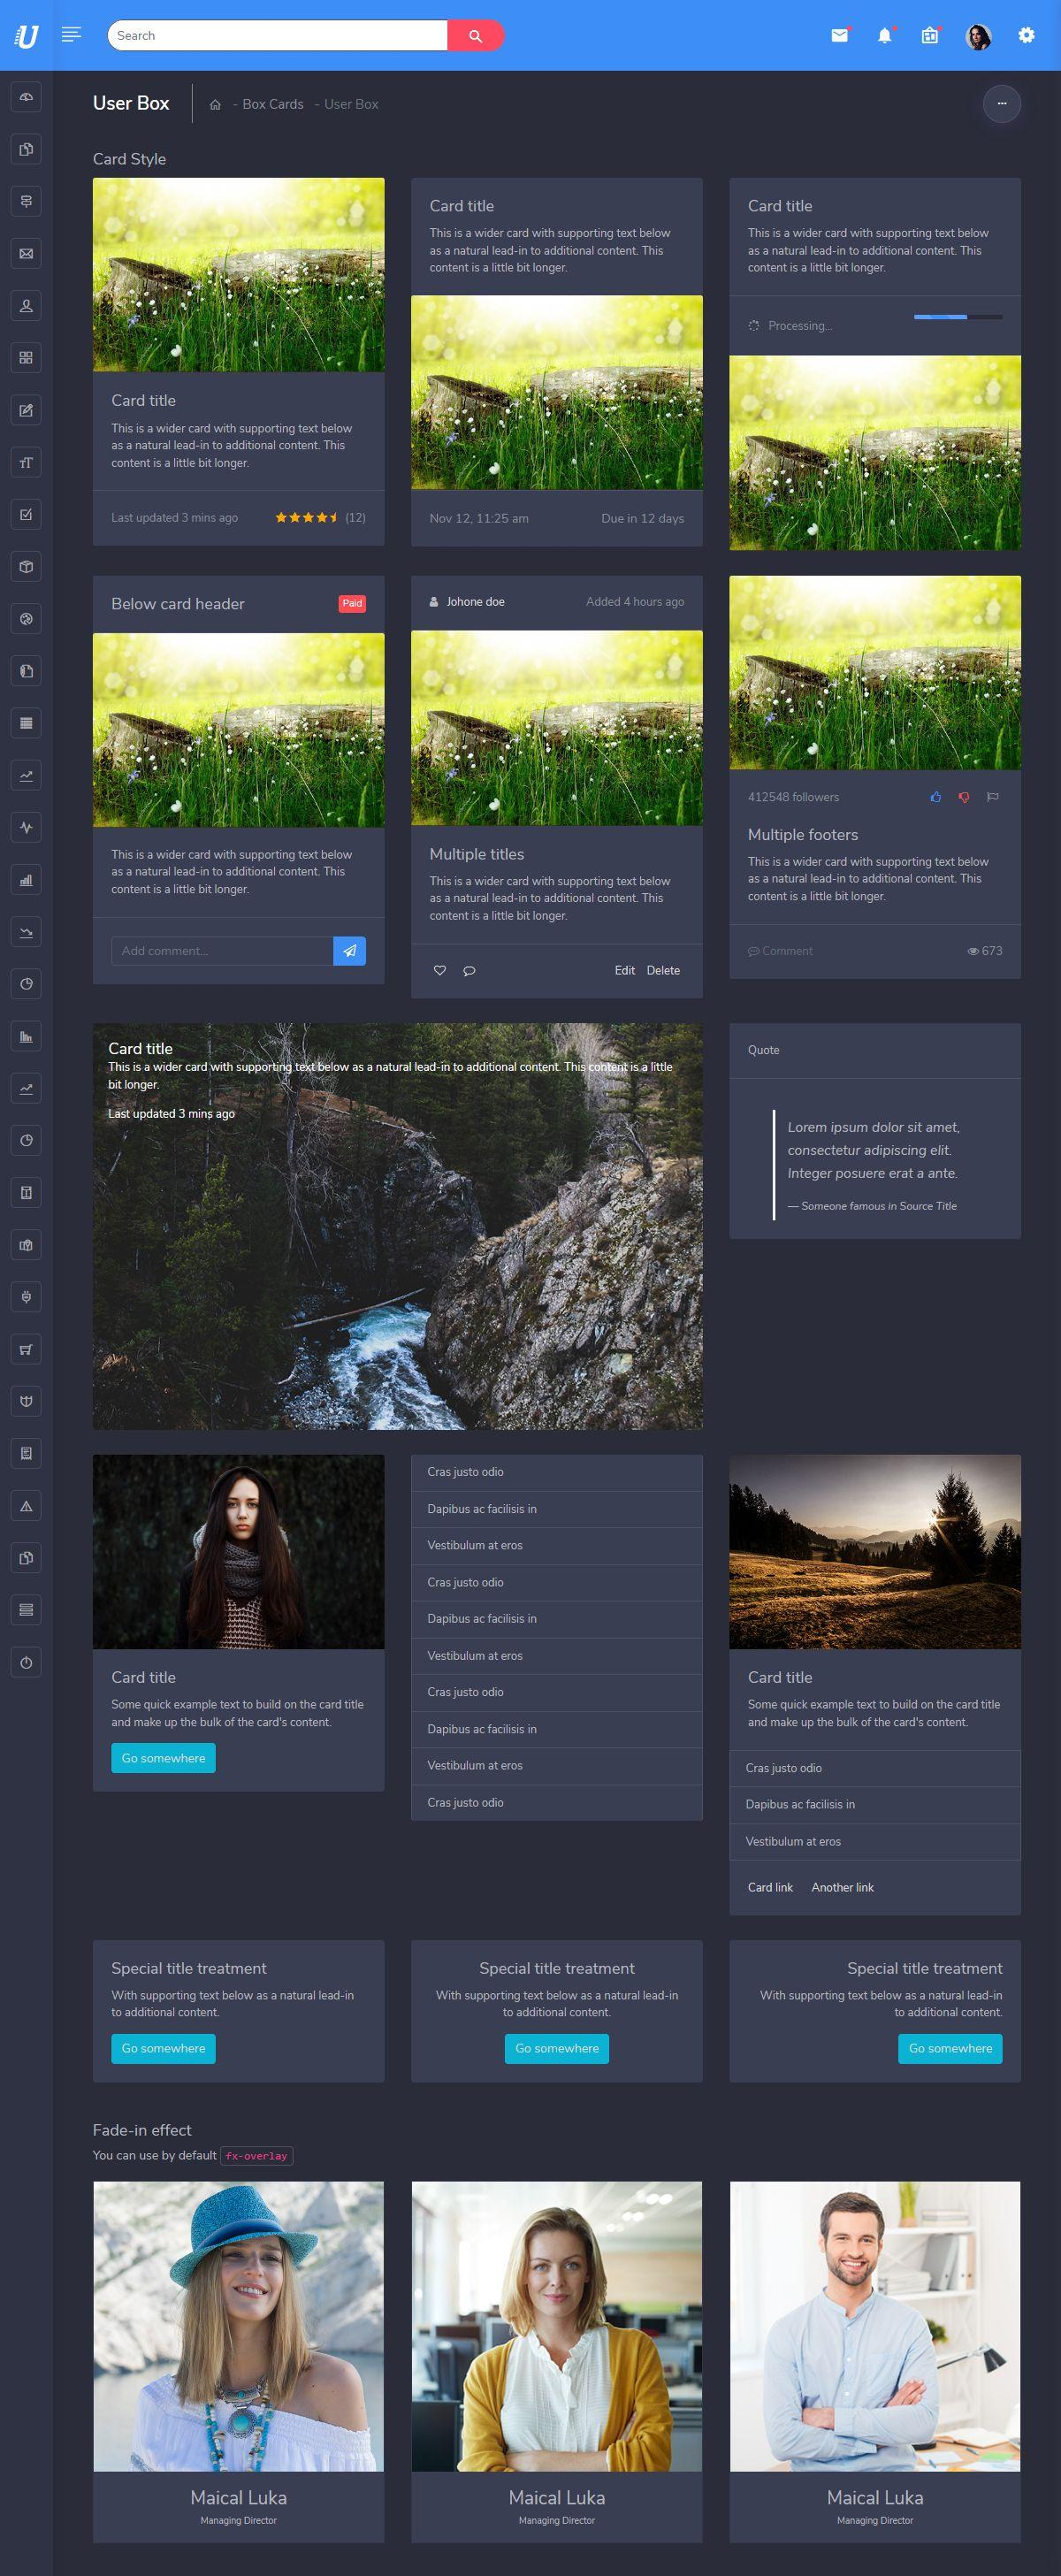 ootstrap Admin Template